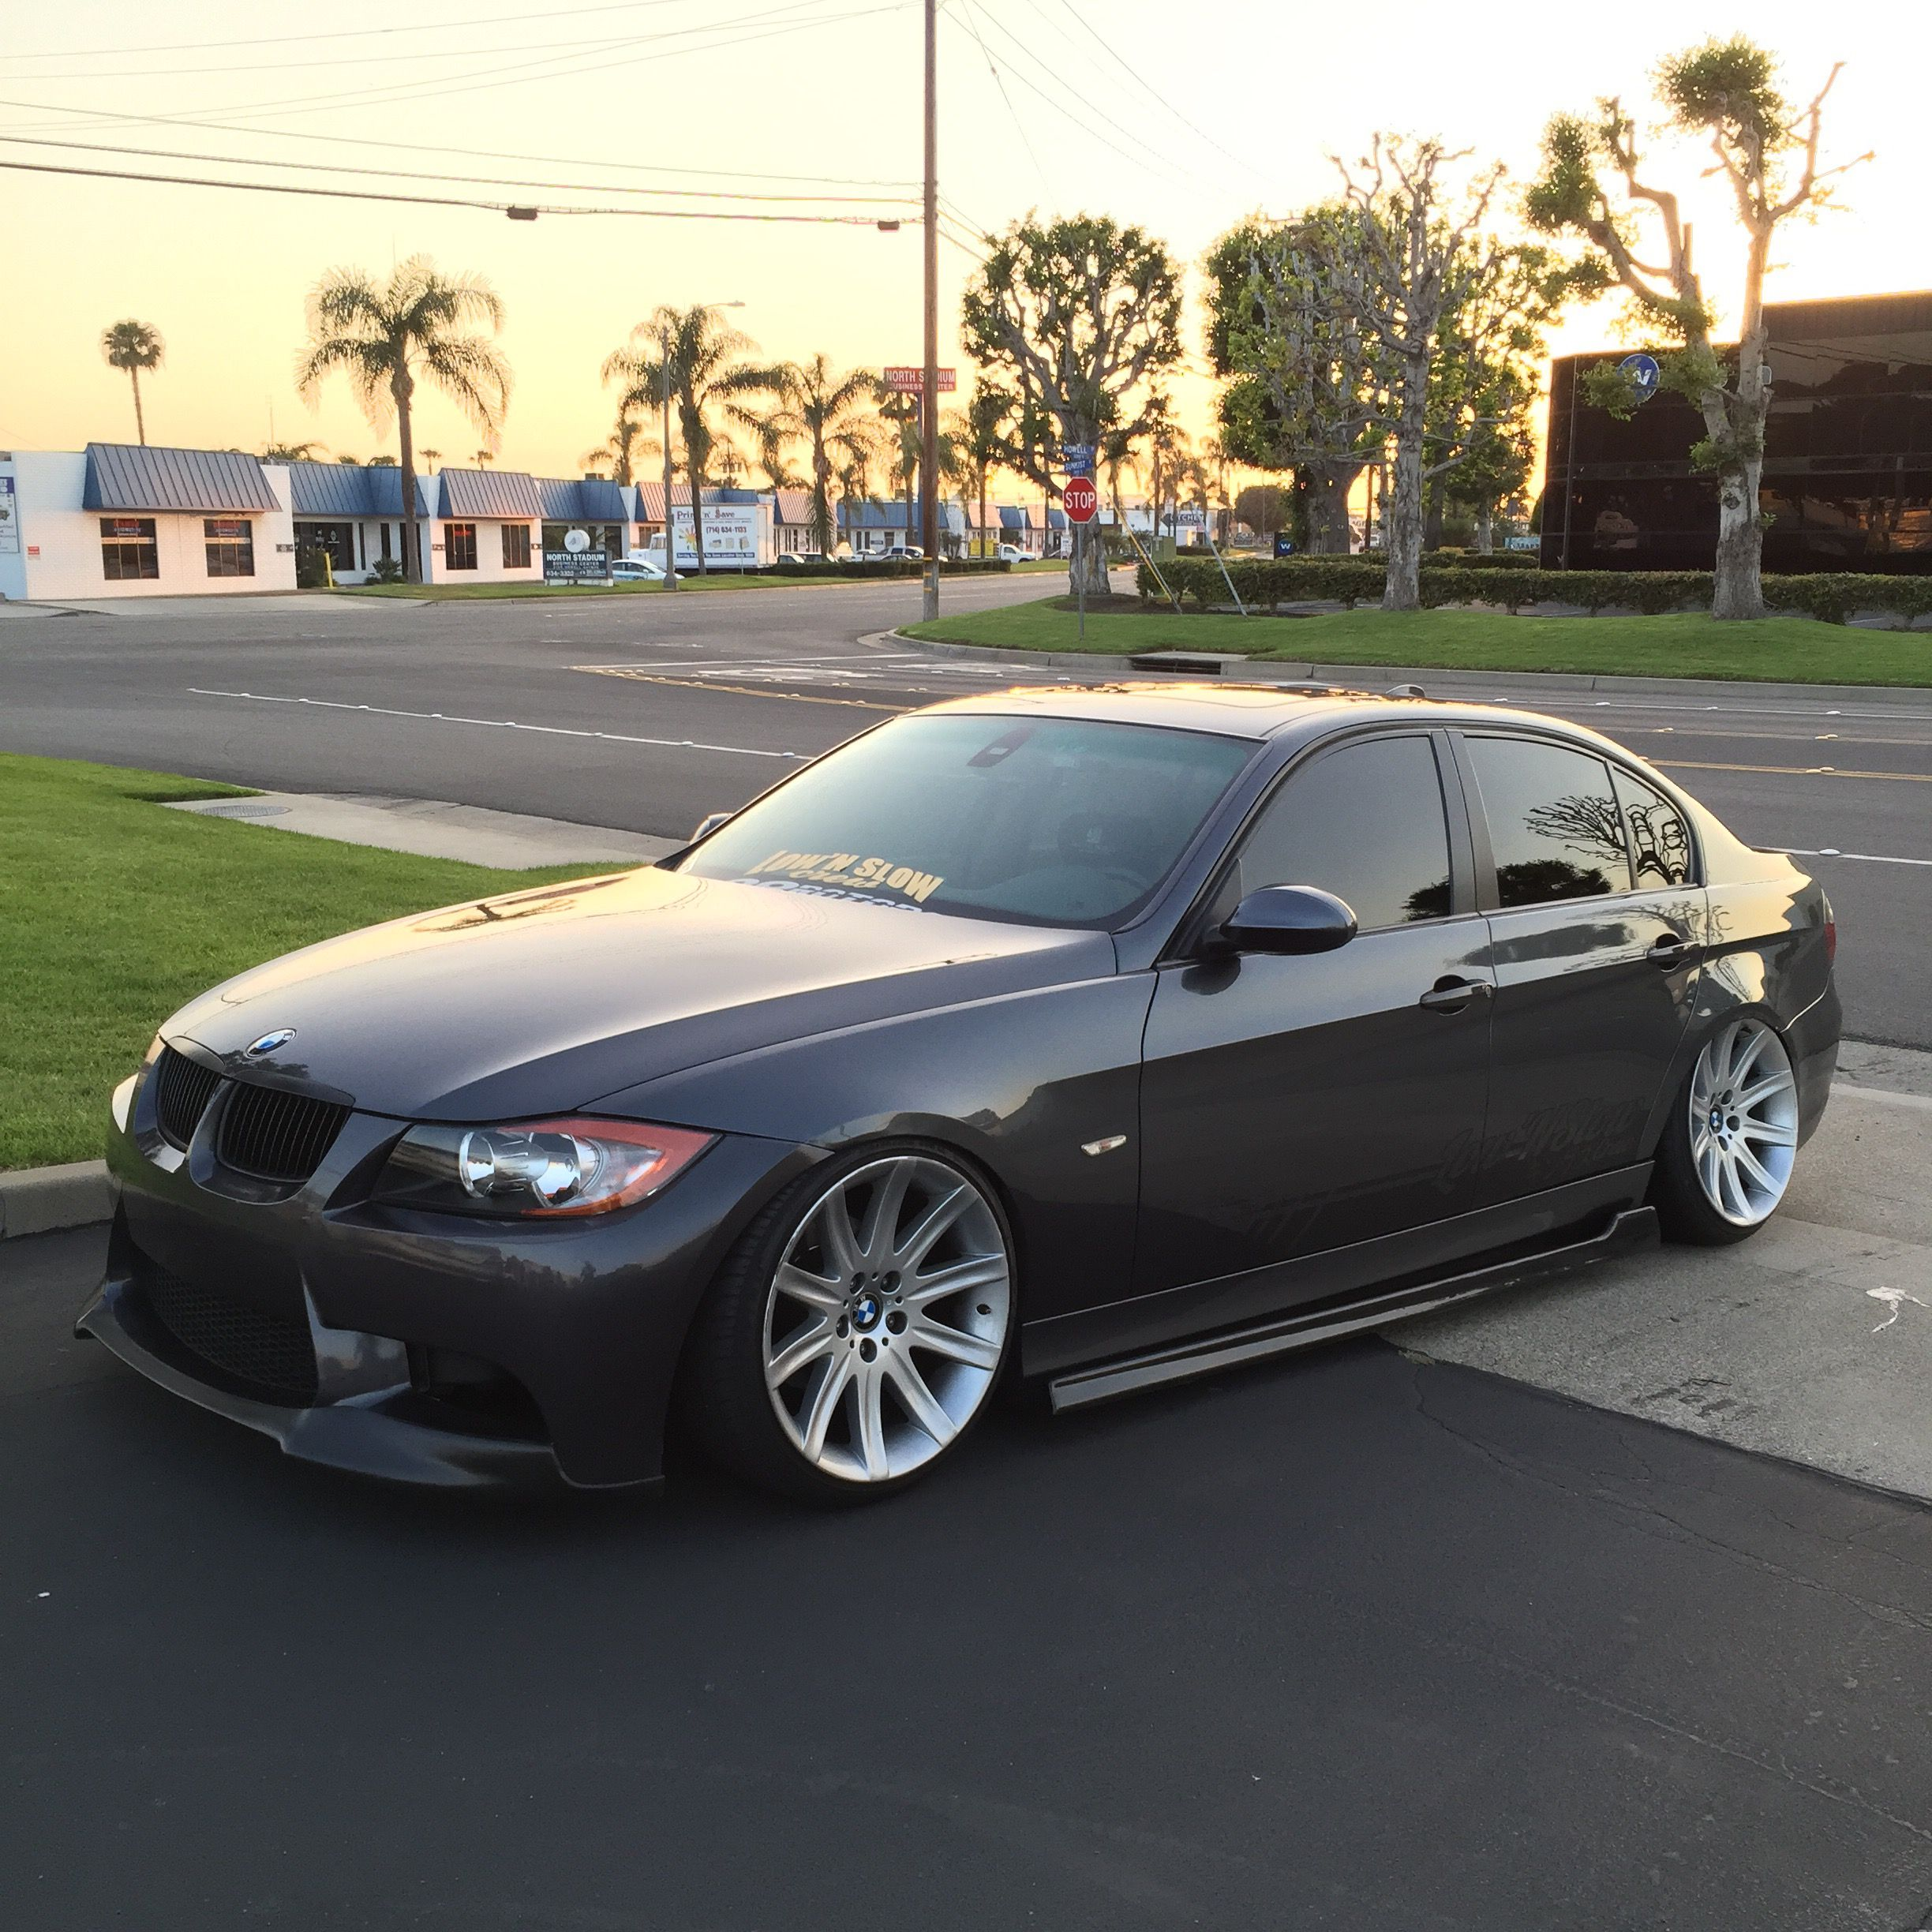 bmw 3 series e90 bmw pinterest bmw cars and bmw cars. Black Bedroom Furniture Sets. Home Design Ideas